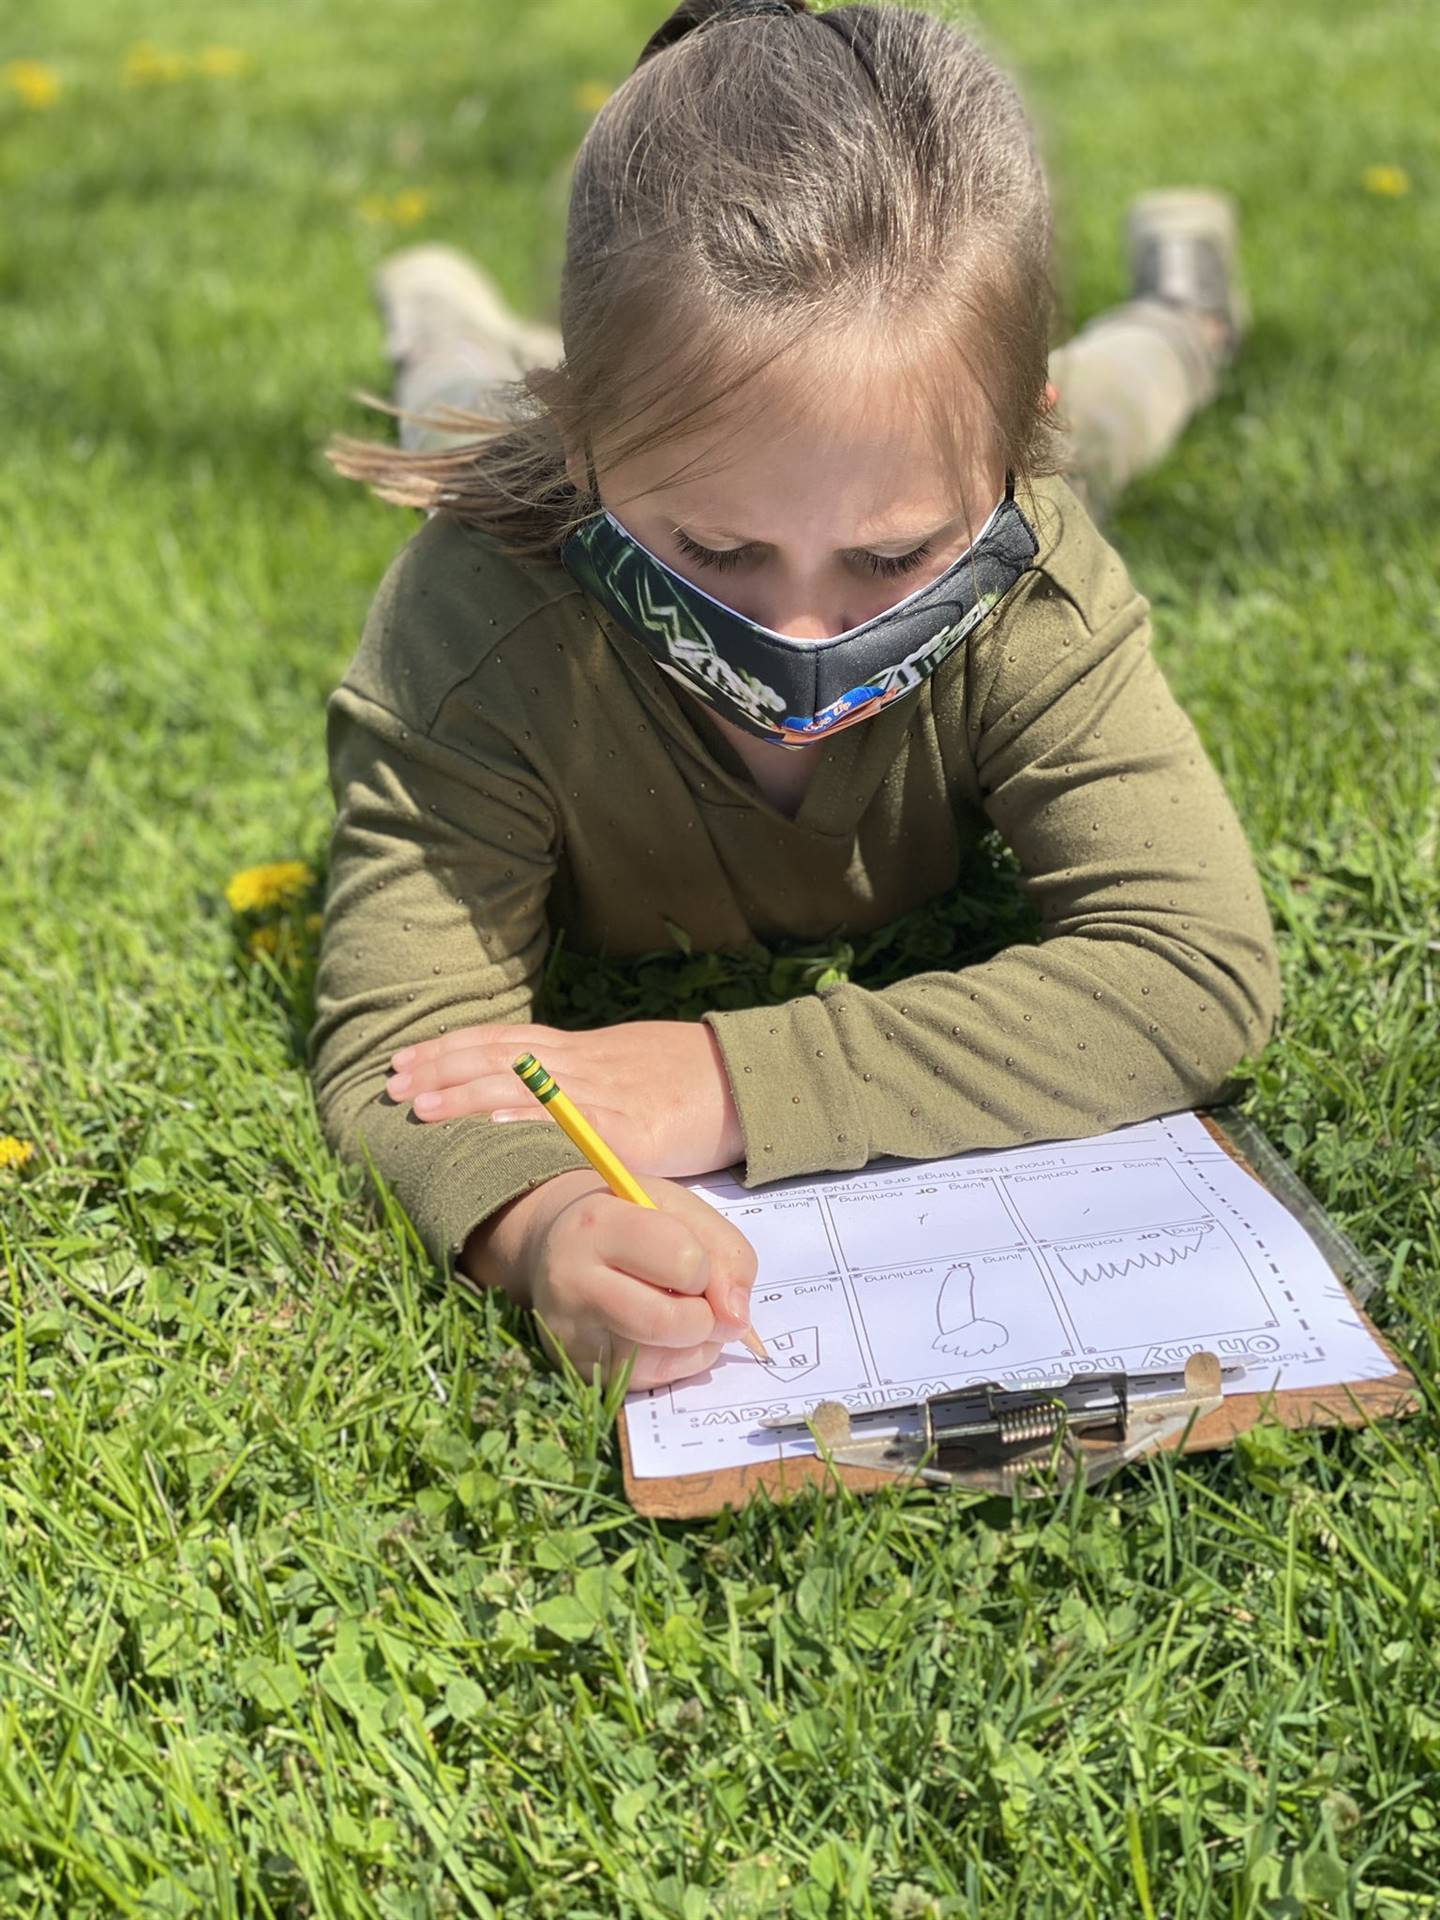 student laying in grass writing on clipboard